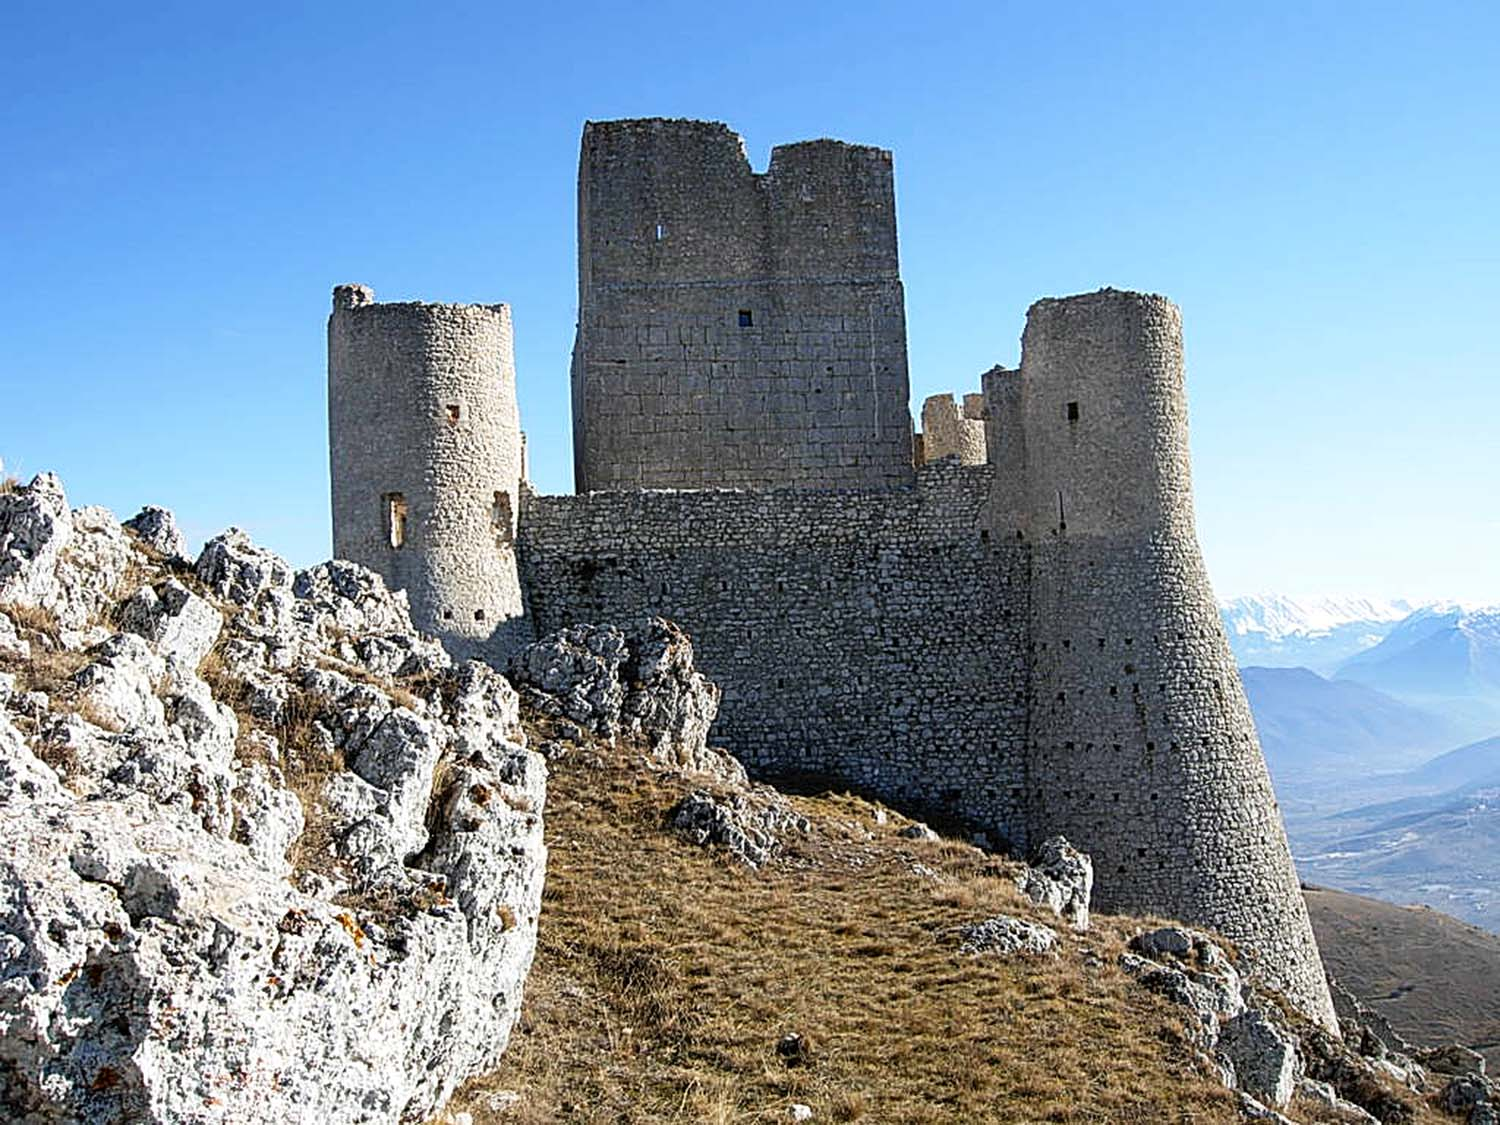 Ascend the Highest Fortress in Italy